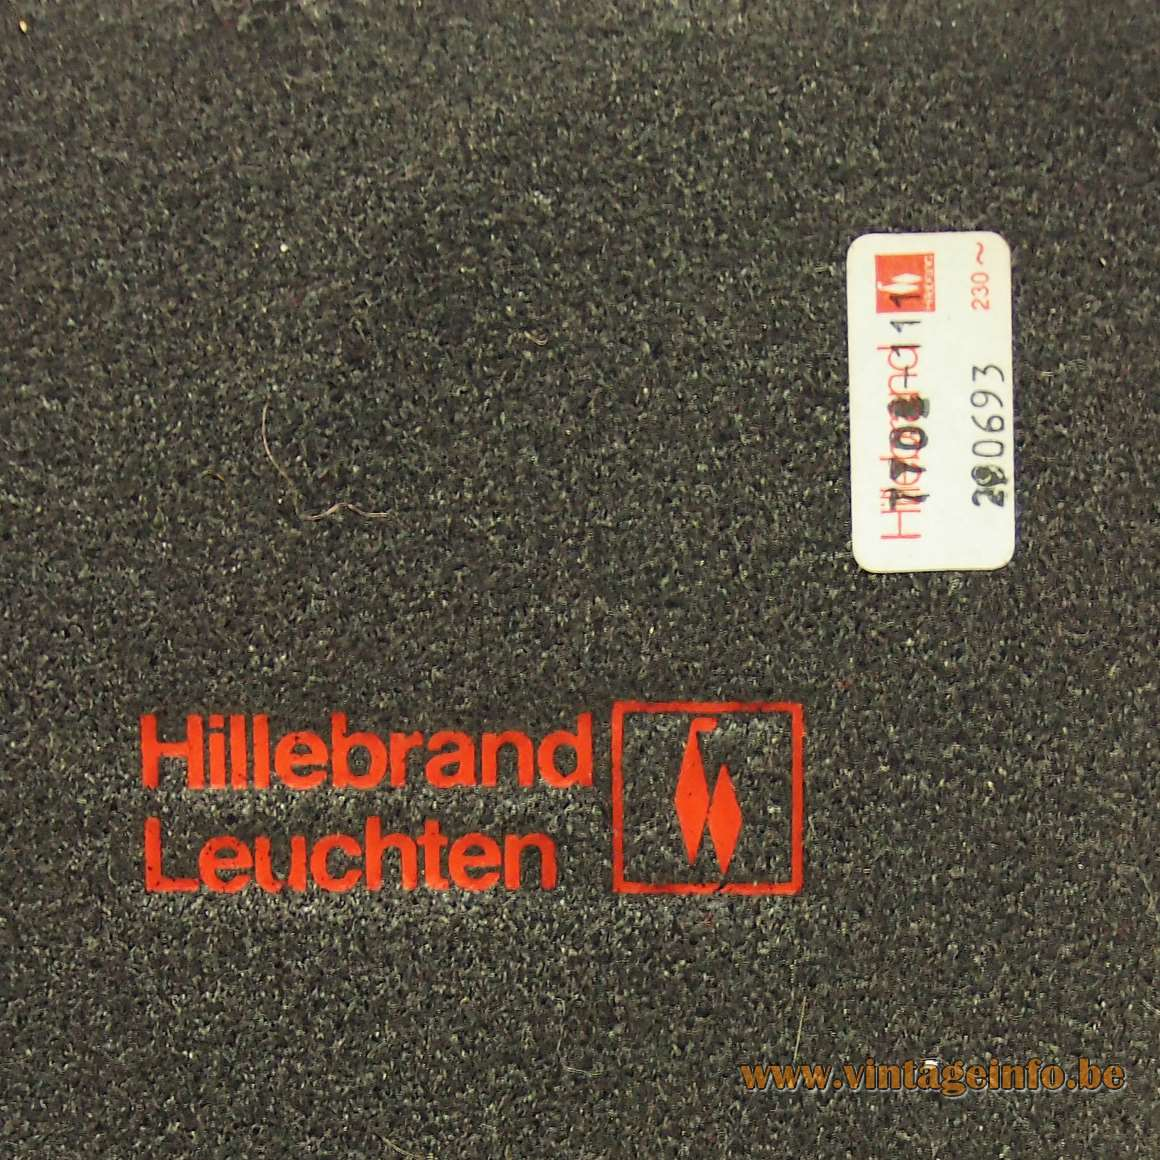 Hillebrand Desk Lamp 7702 - label